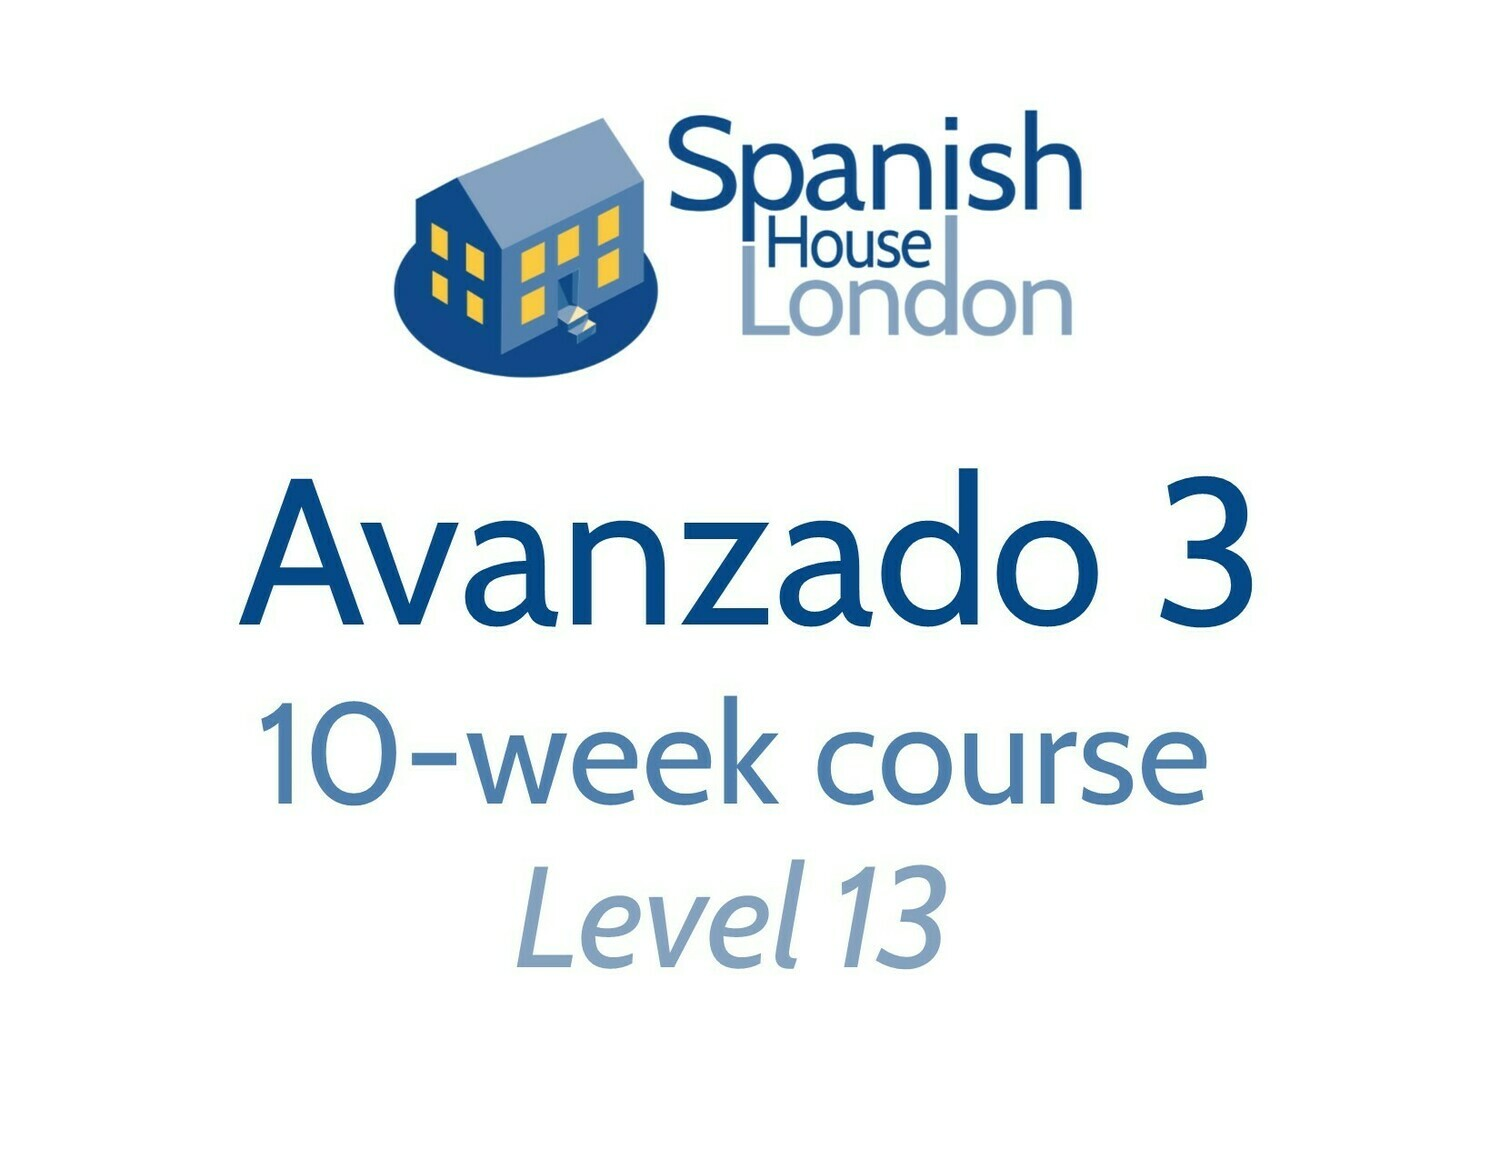 Avanzado 3 Course starting on 1st September at 6pm in Clapham North